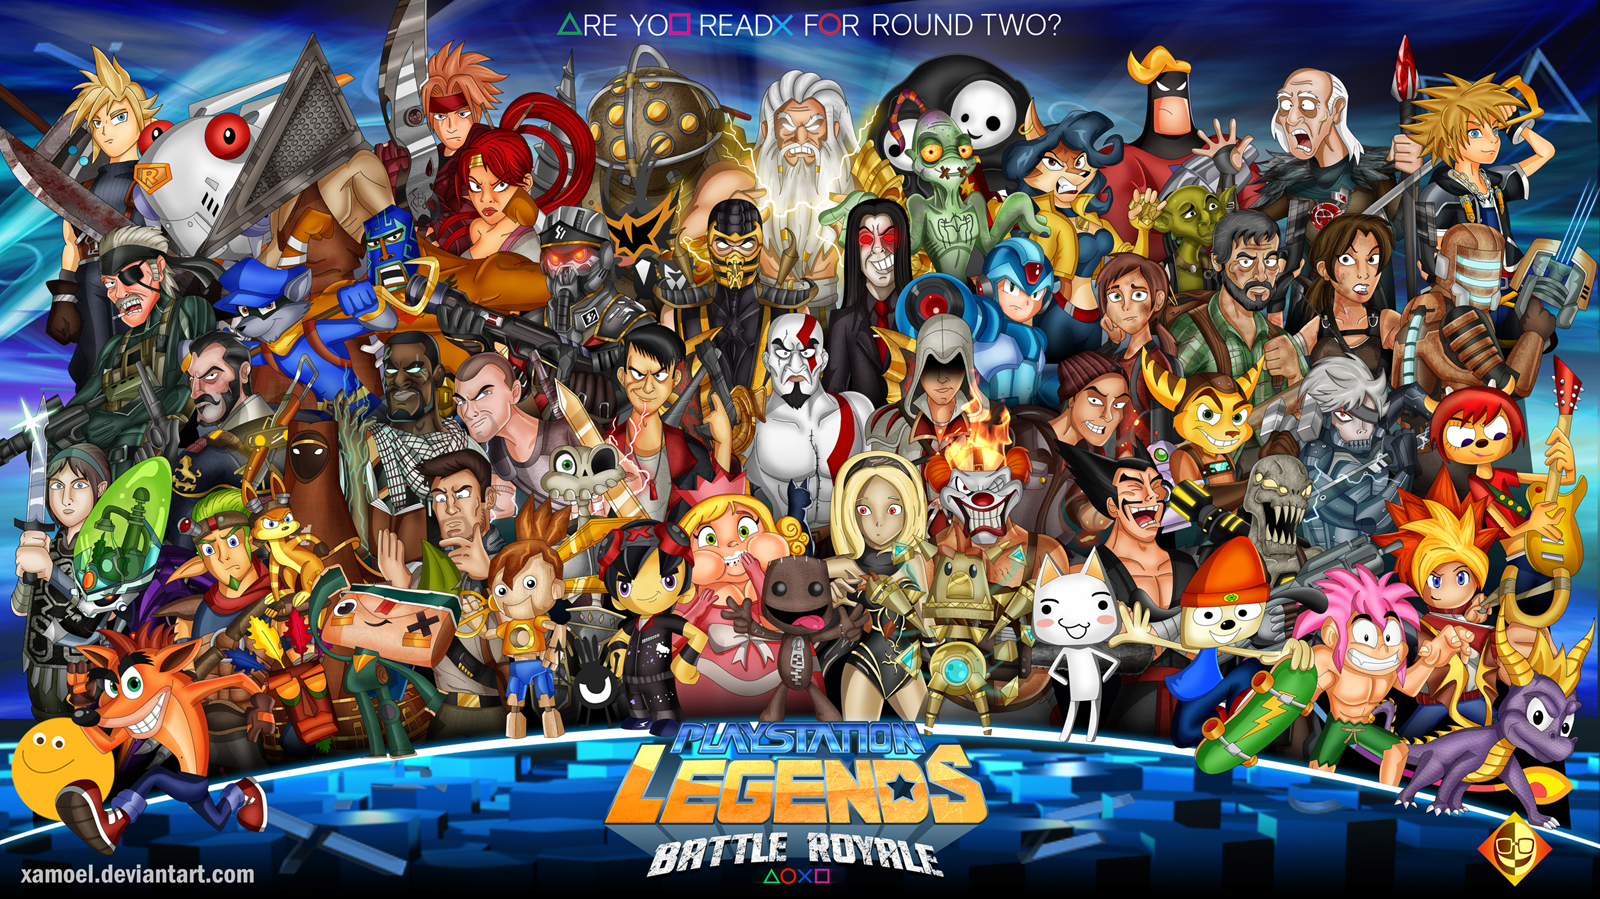 All Games For Ps3 : Playstation legends battle royale by xamoel on deviantart